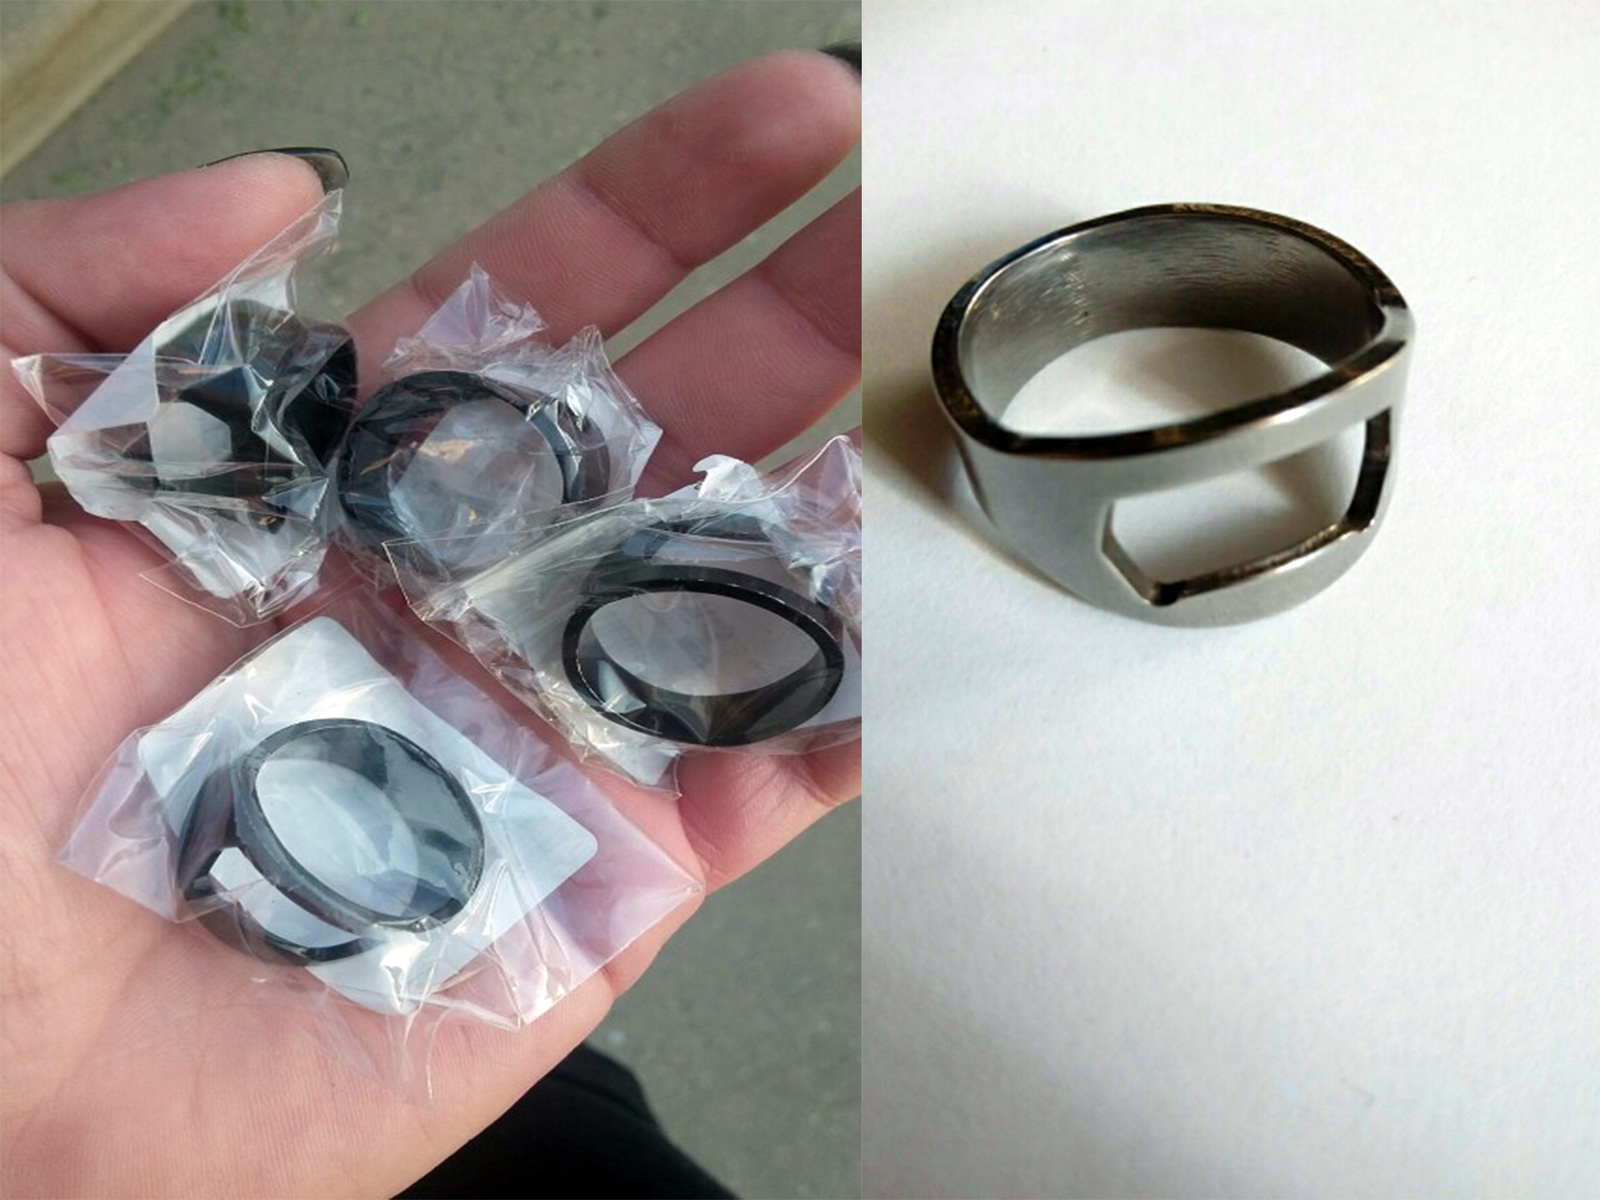 ring beer bottle opener stainless steel for tool kitchen cooking rings. Black Bedroom Furniture Sets. Home Design Ideas